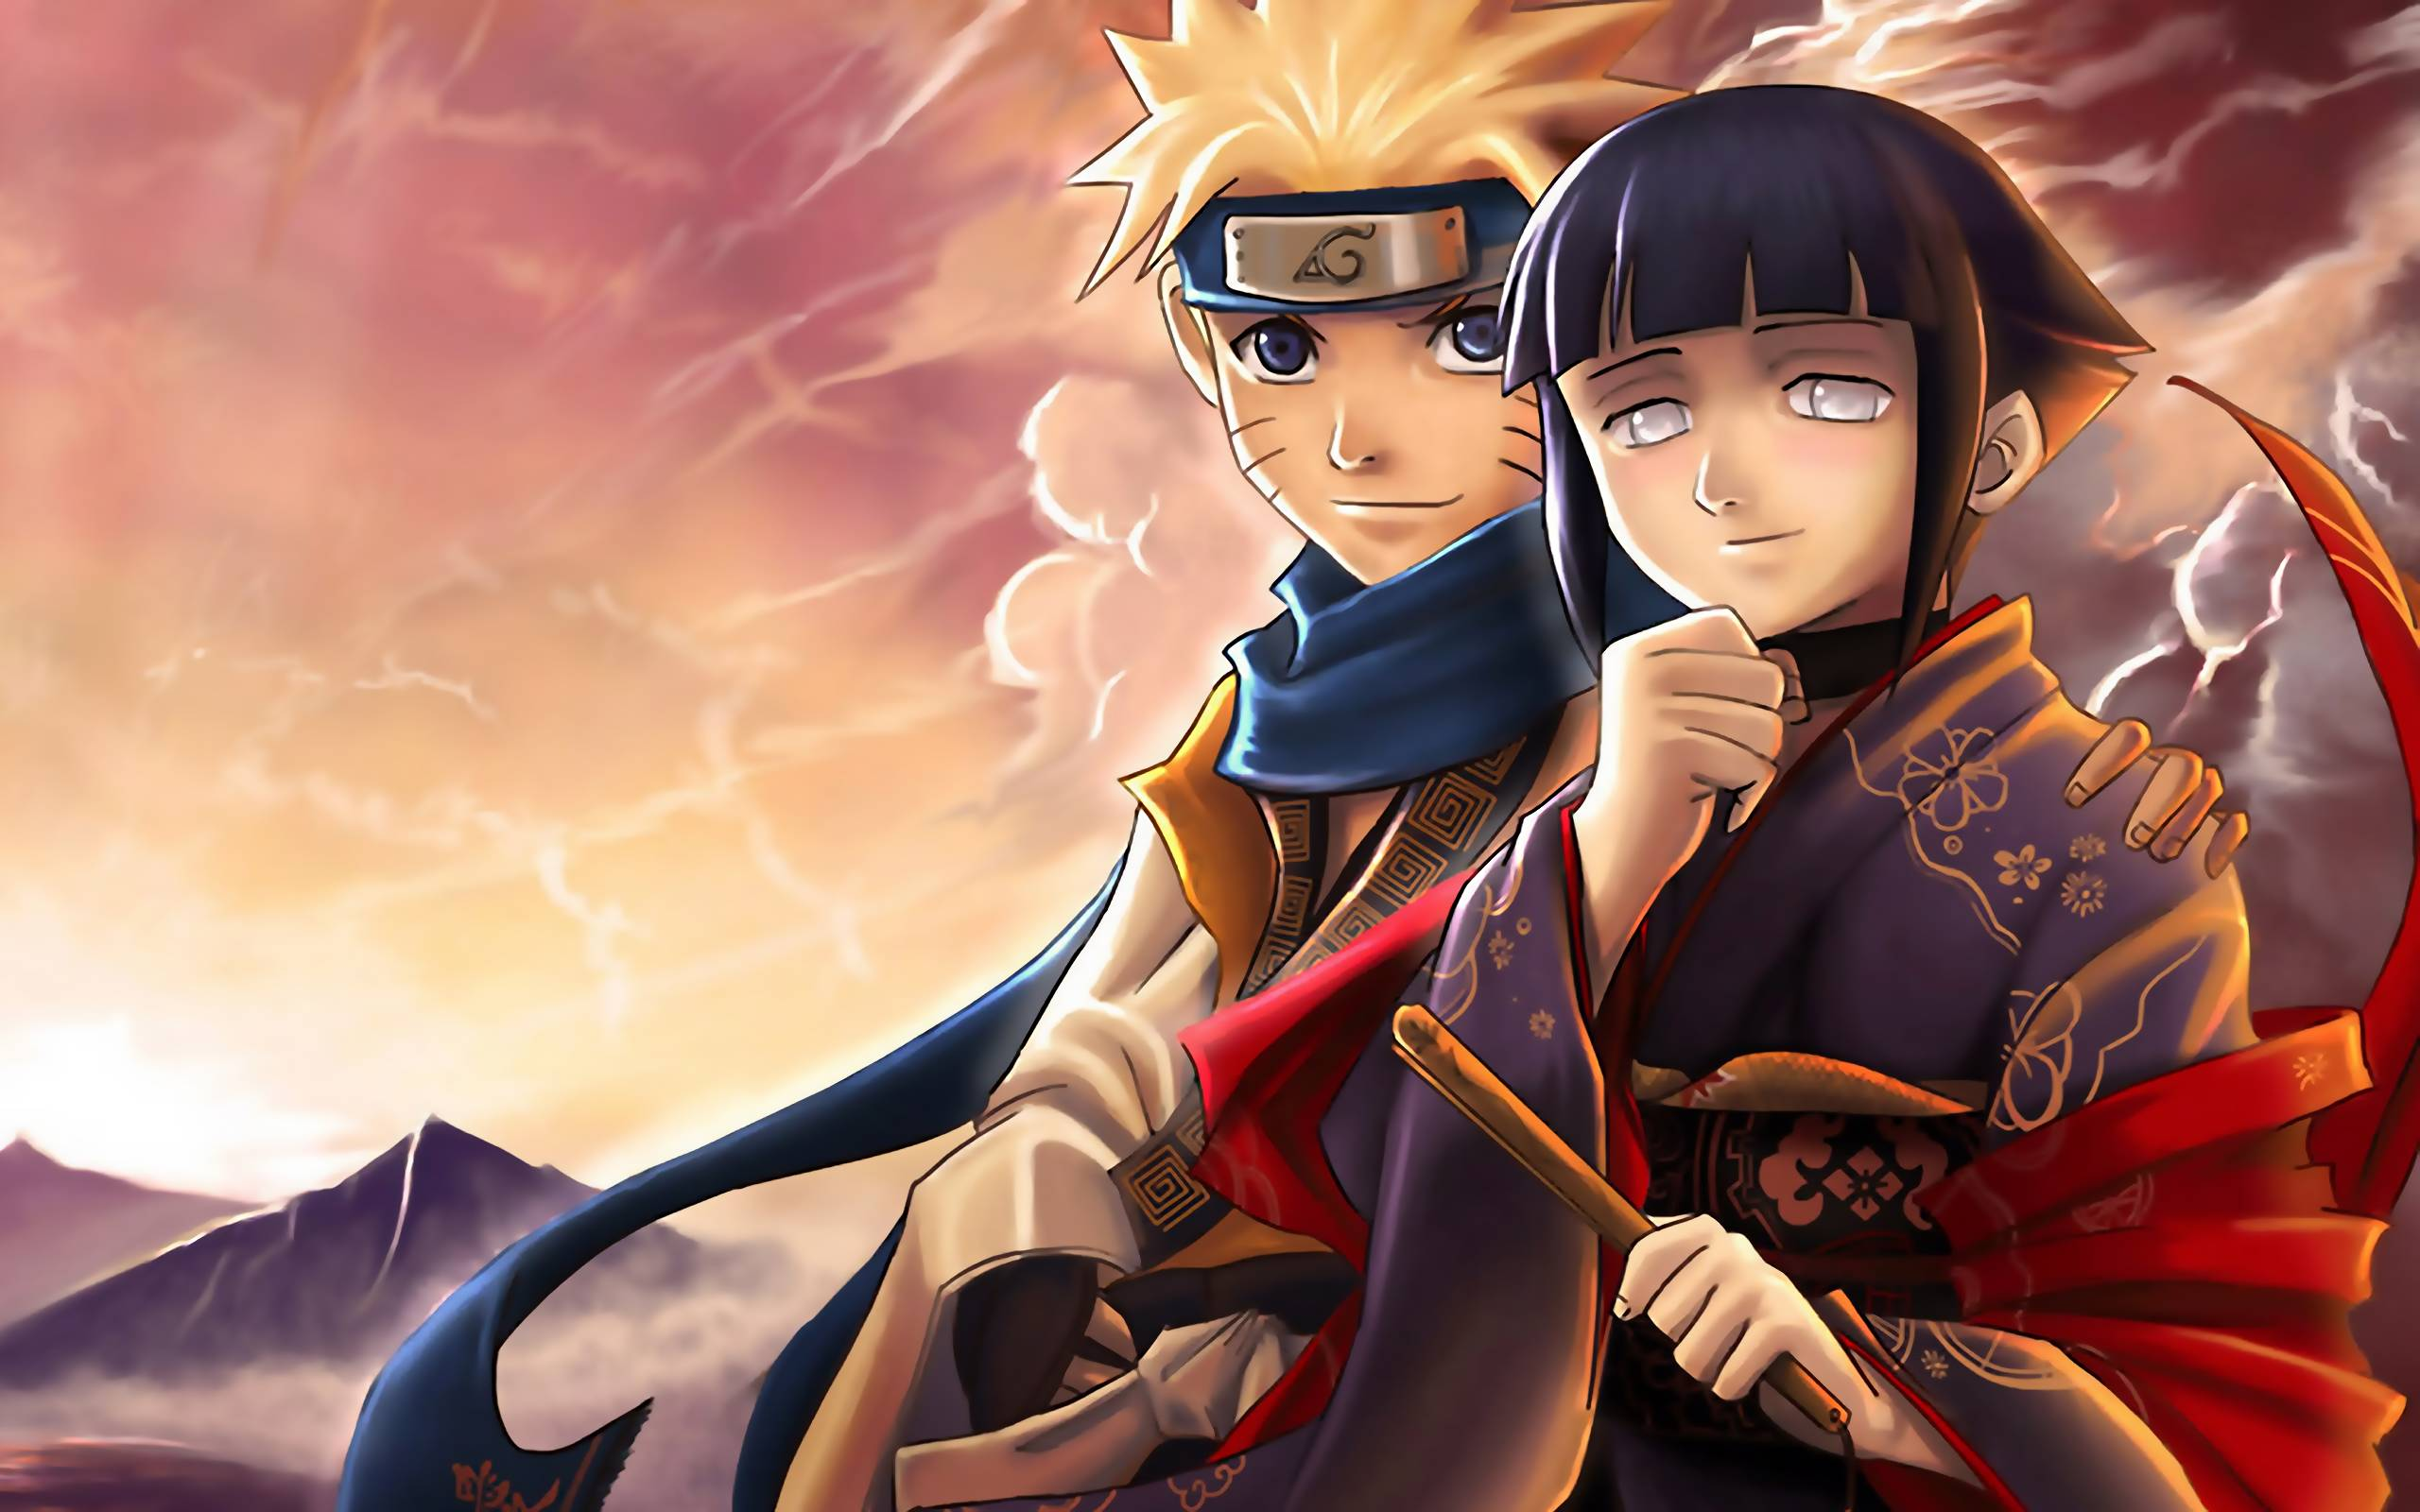 cool wallpapers images photos download Cool Naruto Wallpapers 2560x1600